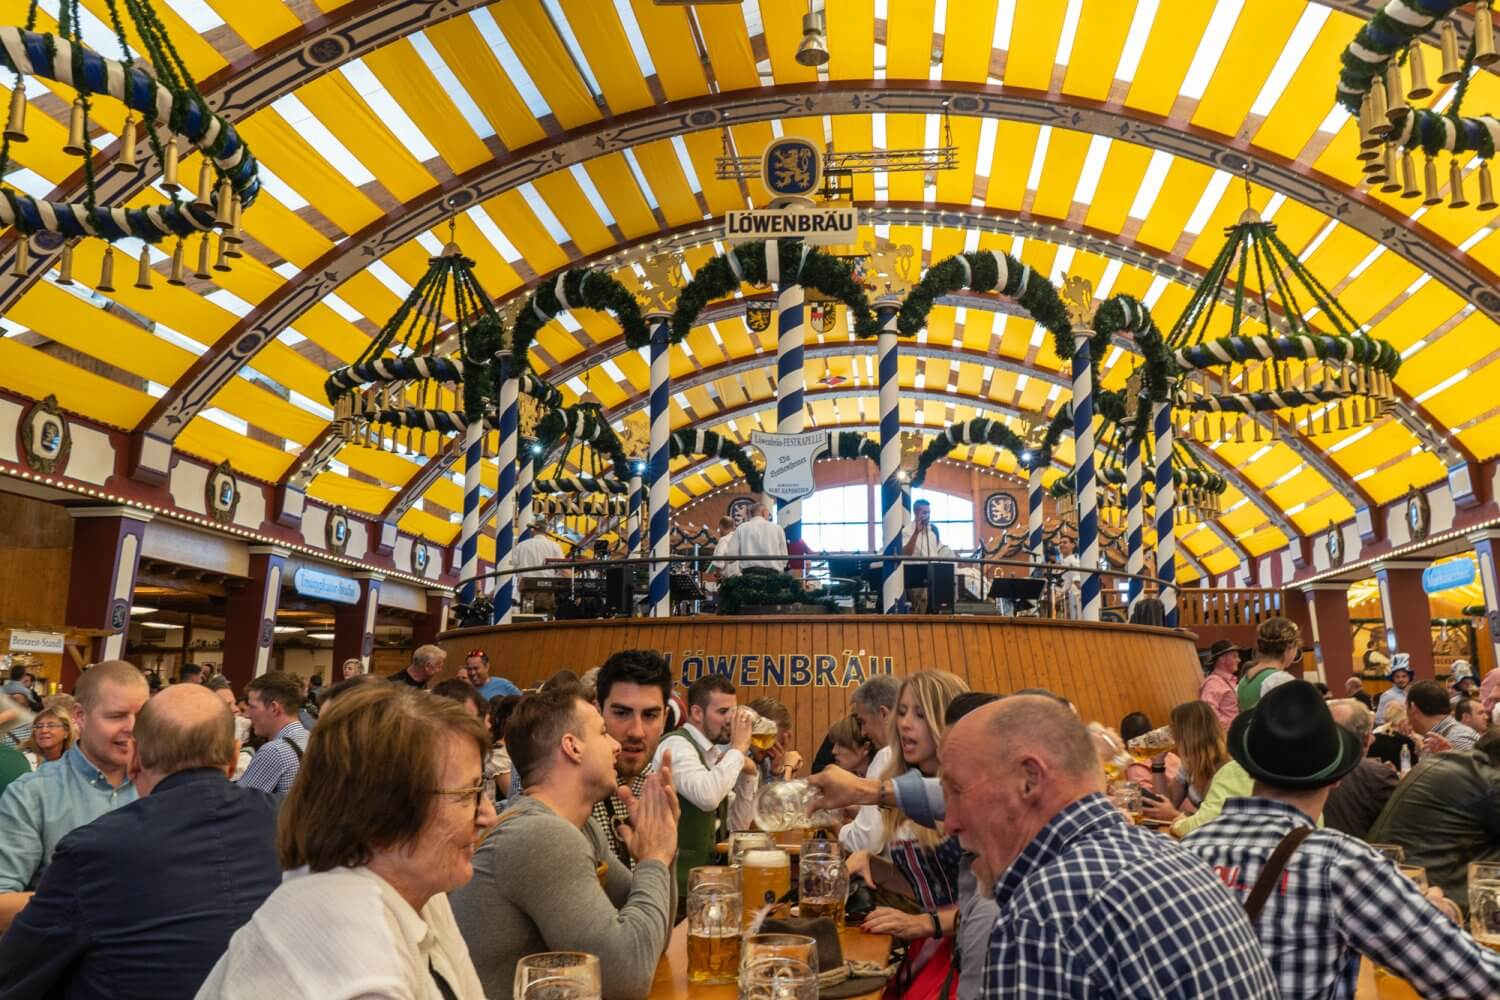 Löwenbräu-Festhalle at Oktoberfest in Munich, Germany